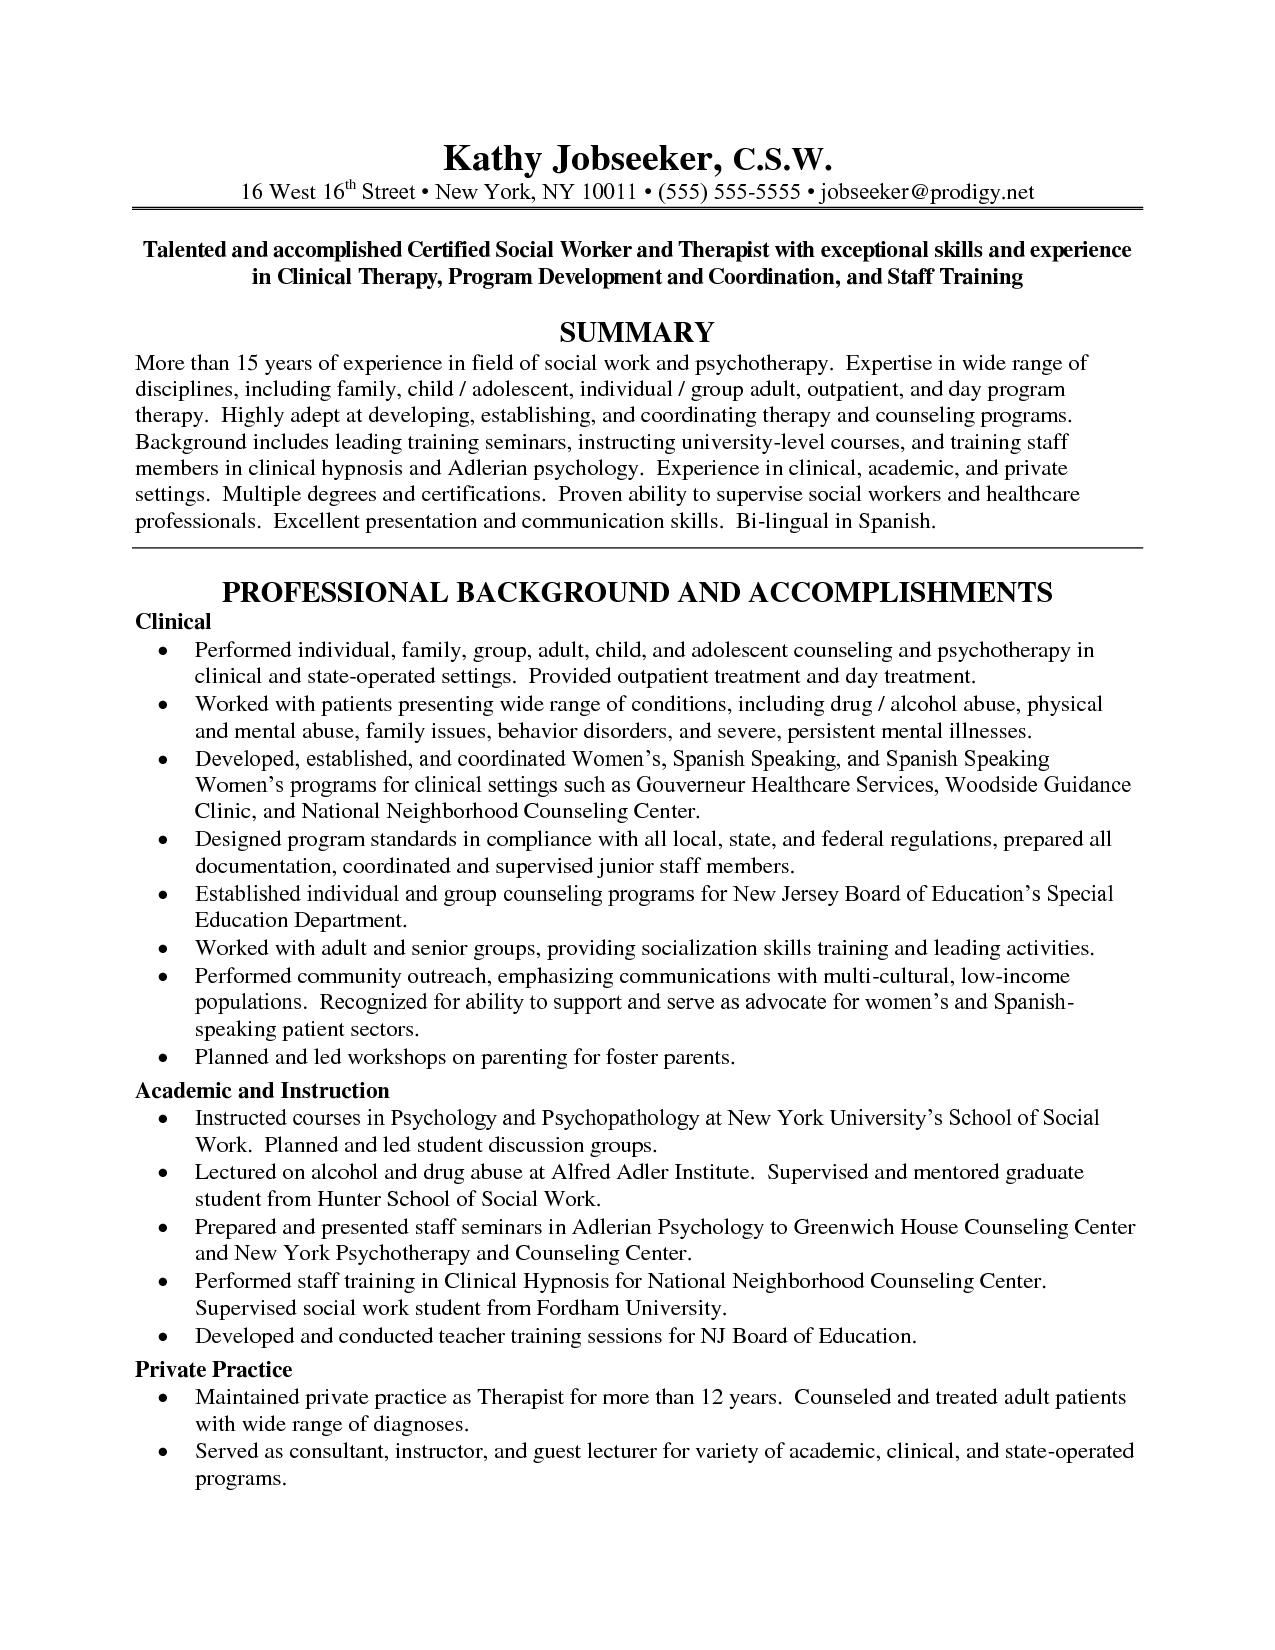 Work Resume Samples Social Work Resume Examples Social Work Resume With License Social